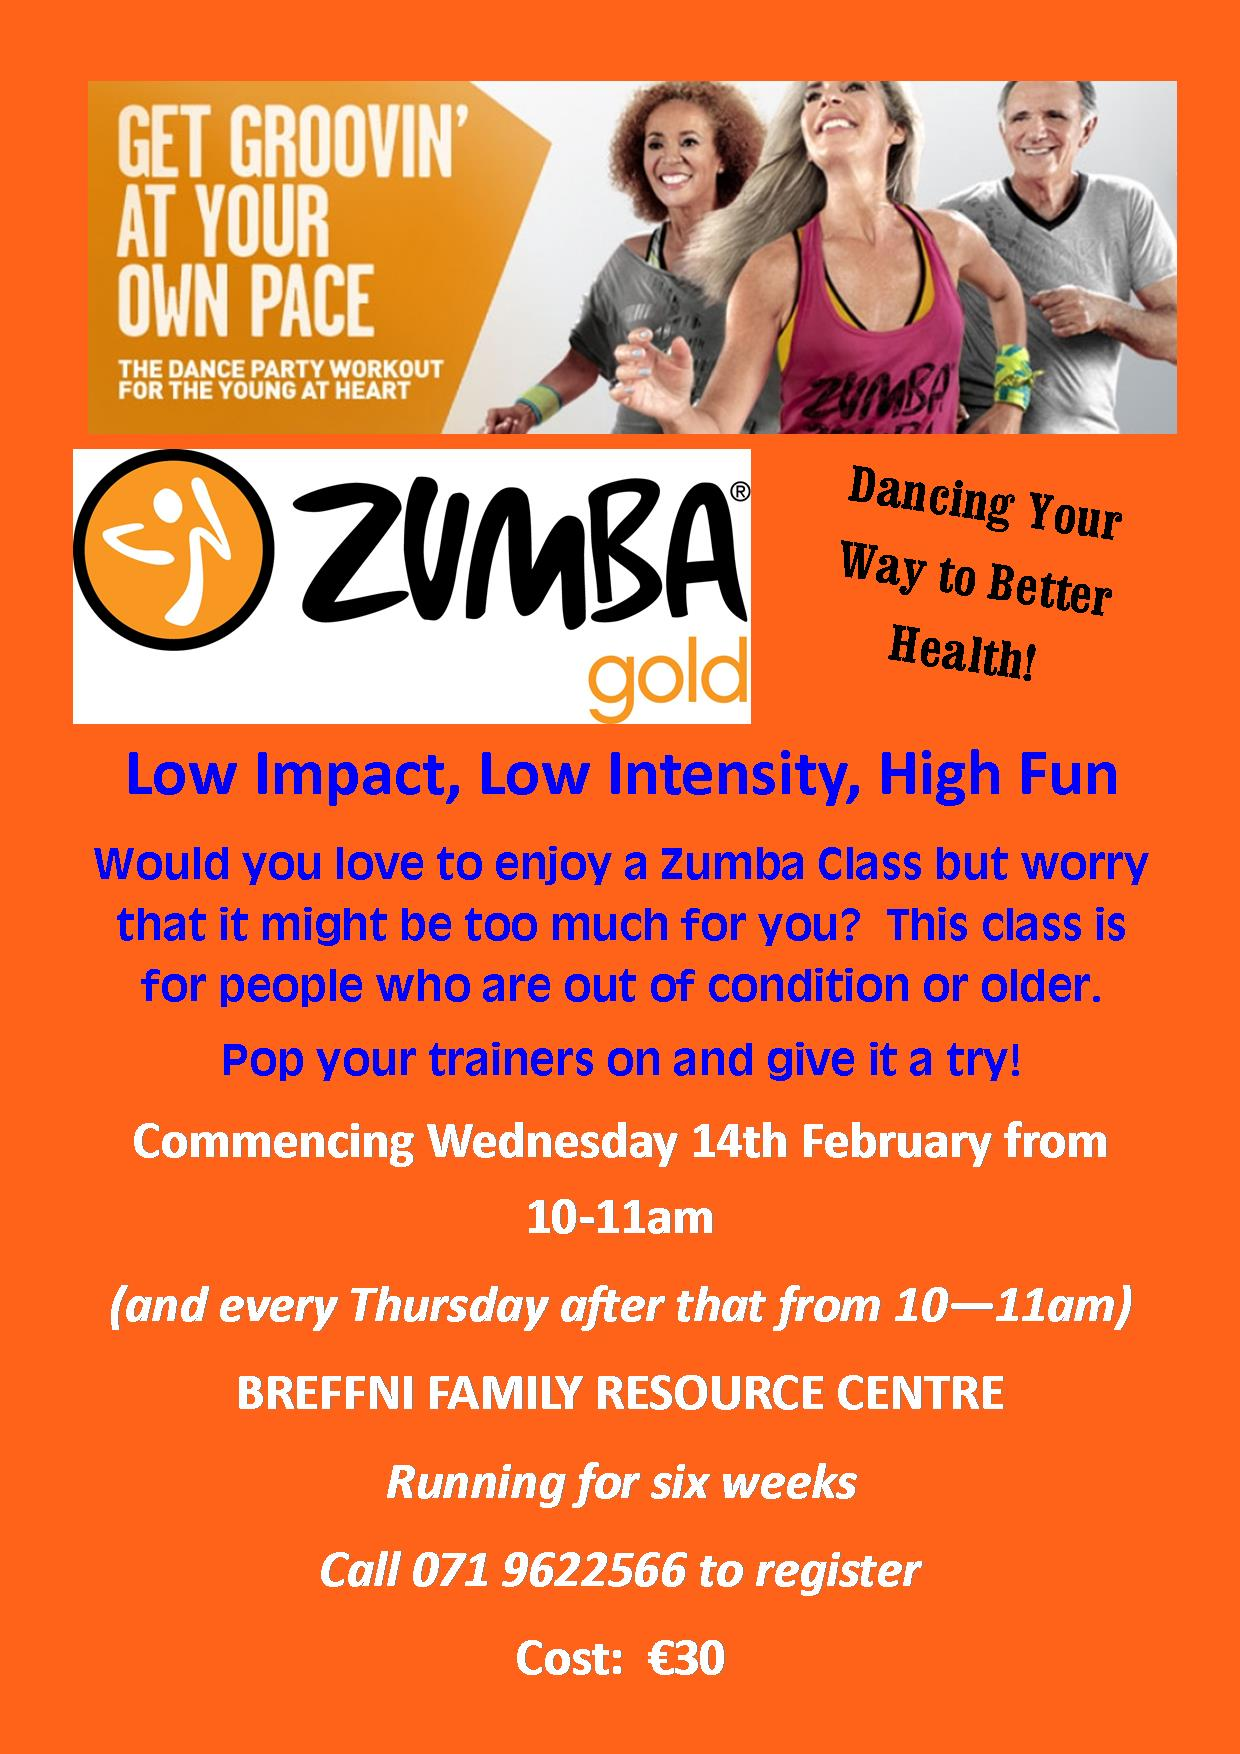 MyCarrick Event - Breffni Family Resource Centre - Zumba Gold